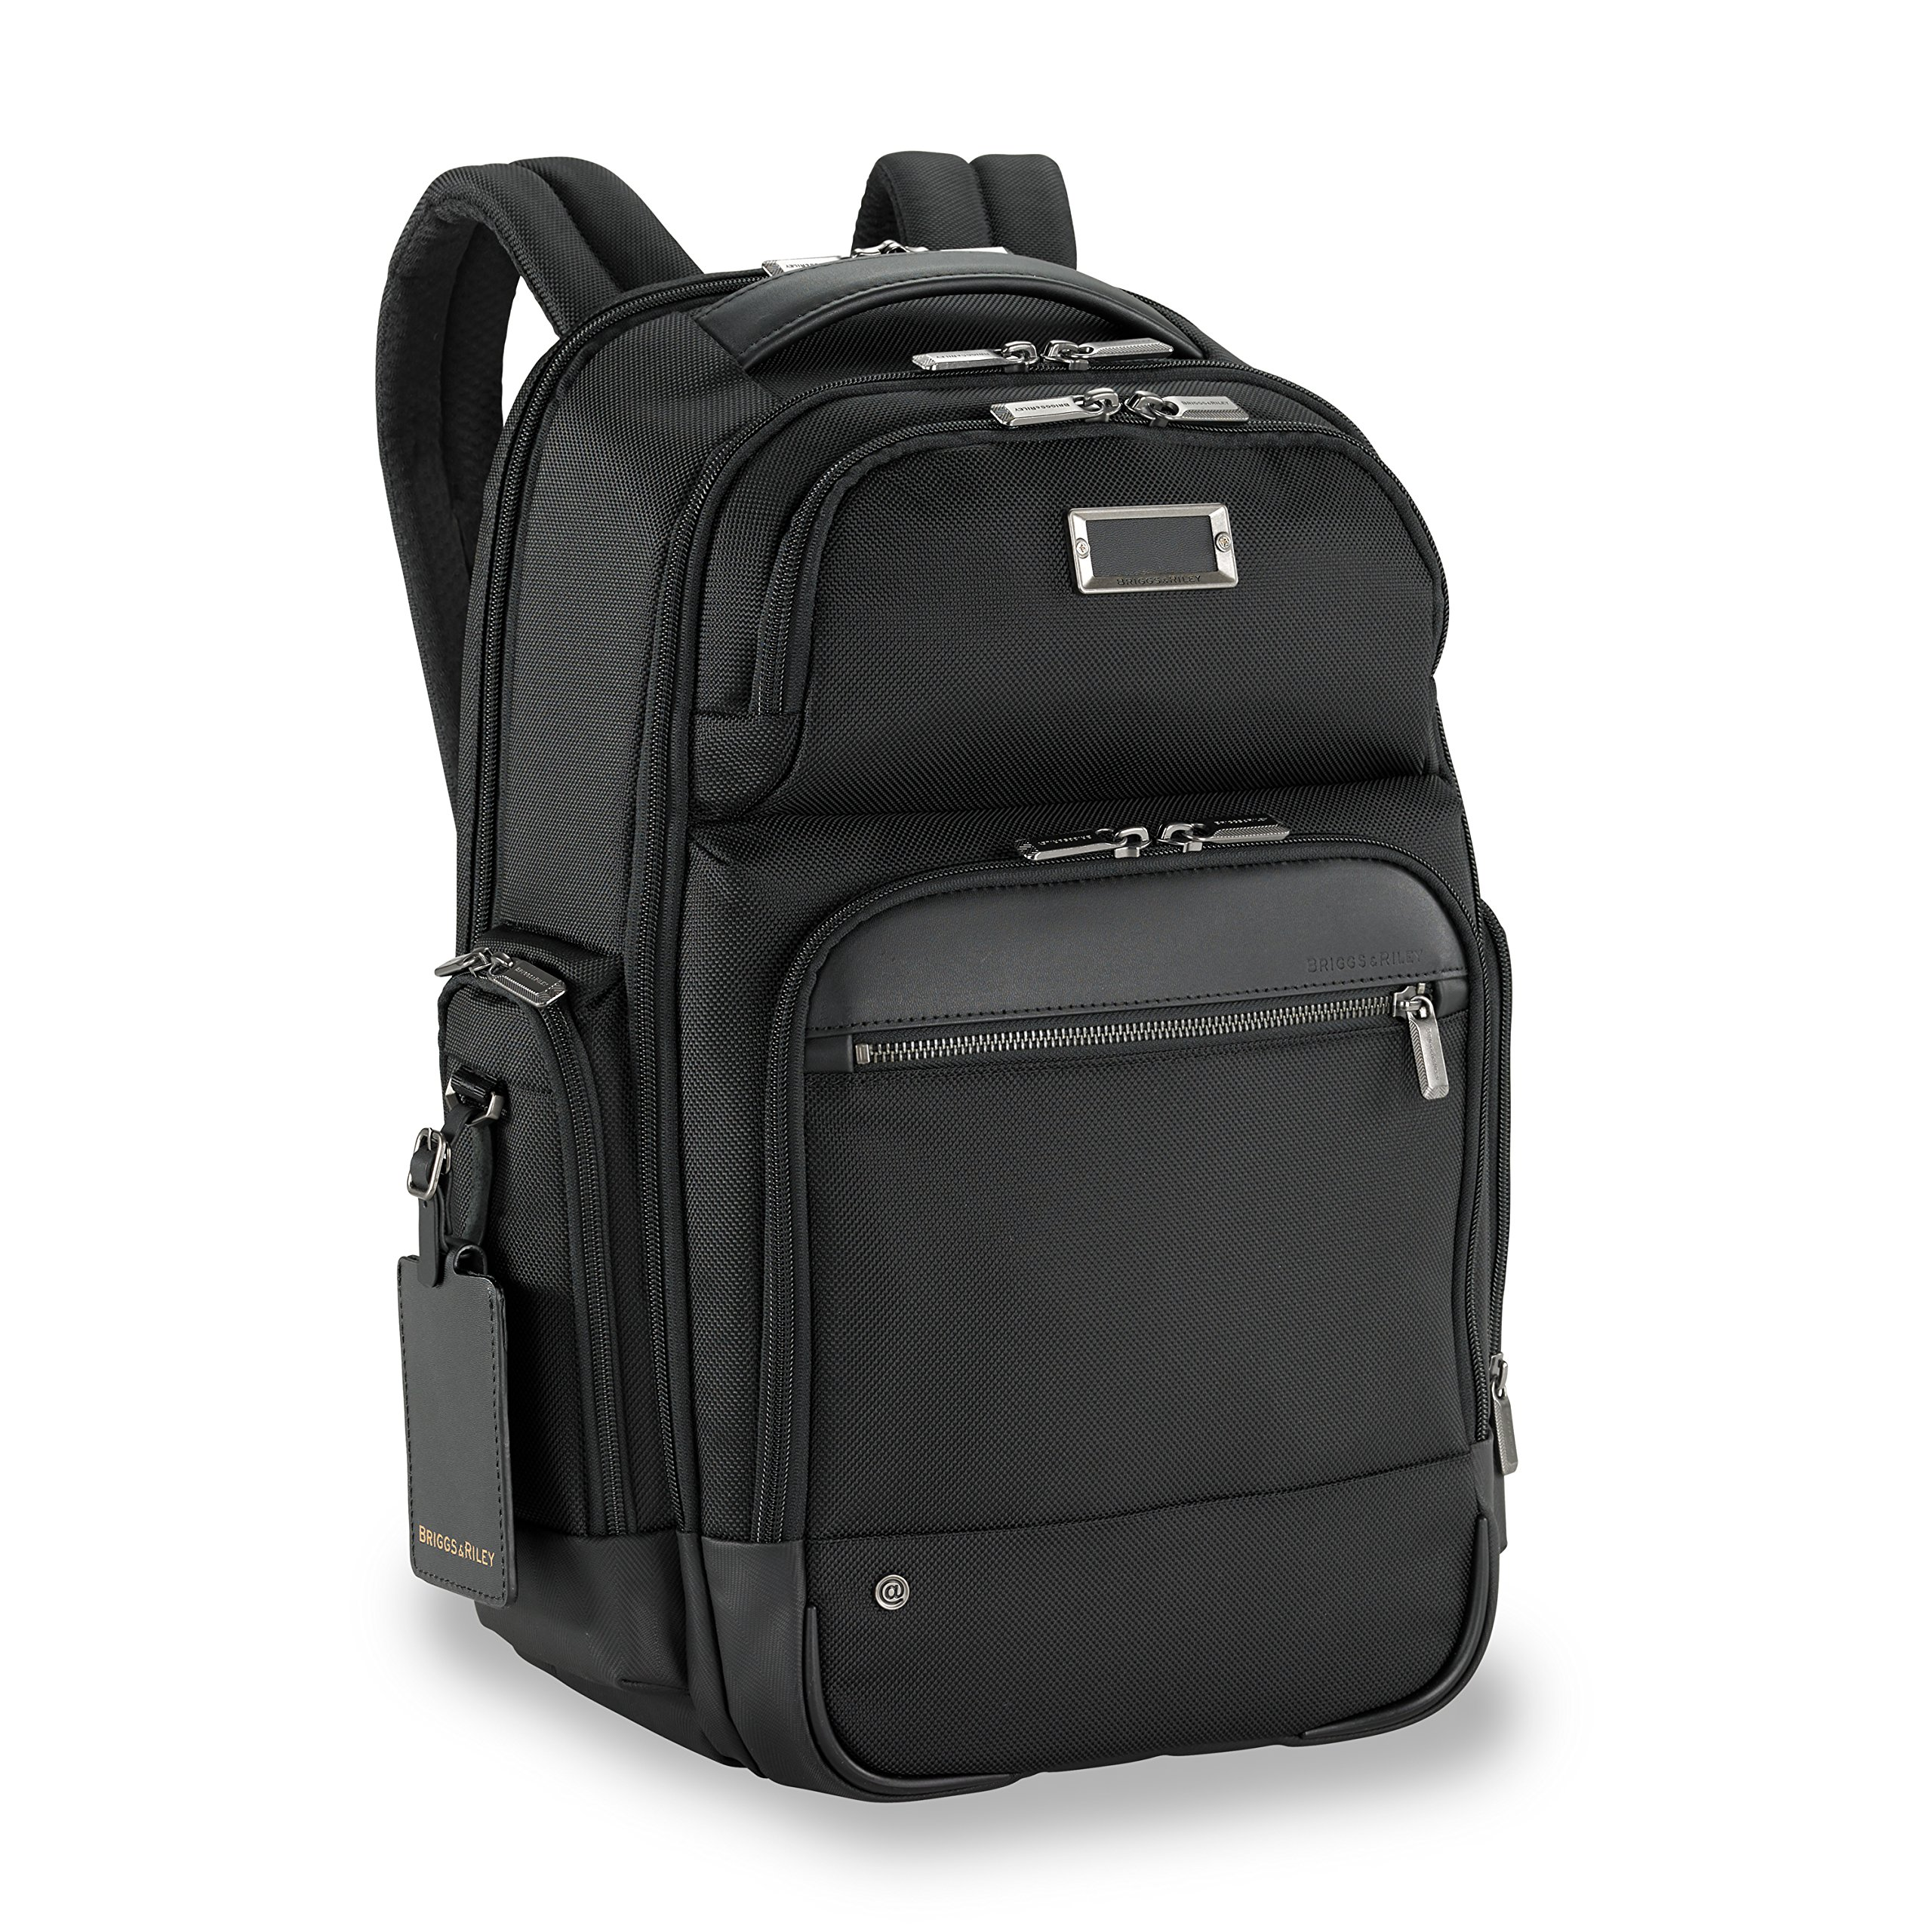 Briggs & Riley @work Medium Cargo Backpack, Black by Briggs & Riley (Image #2)